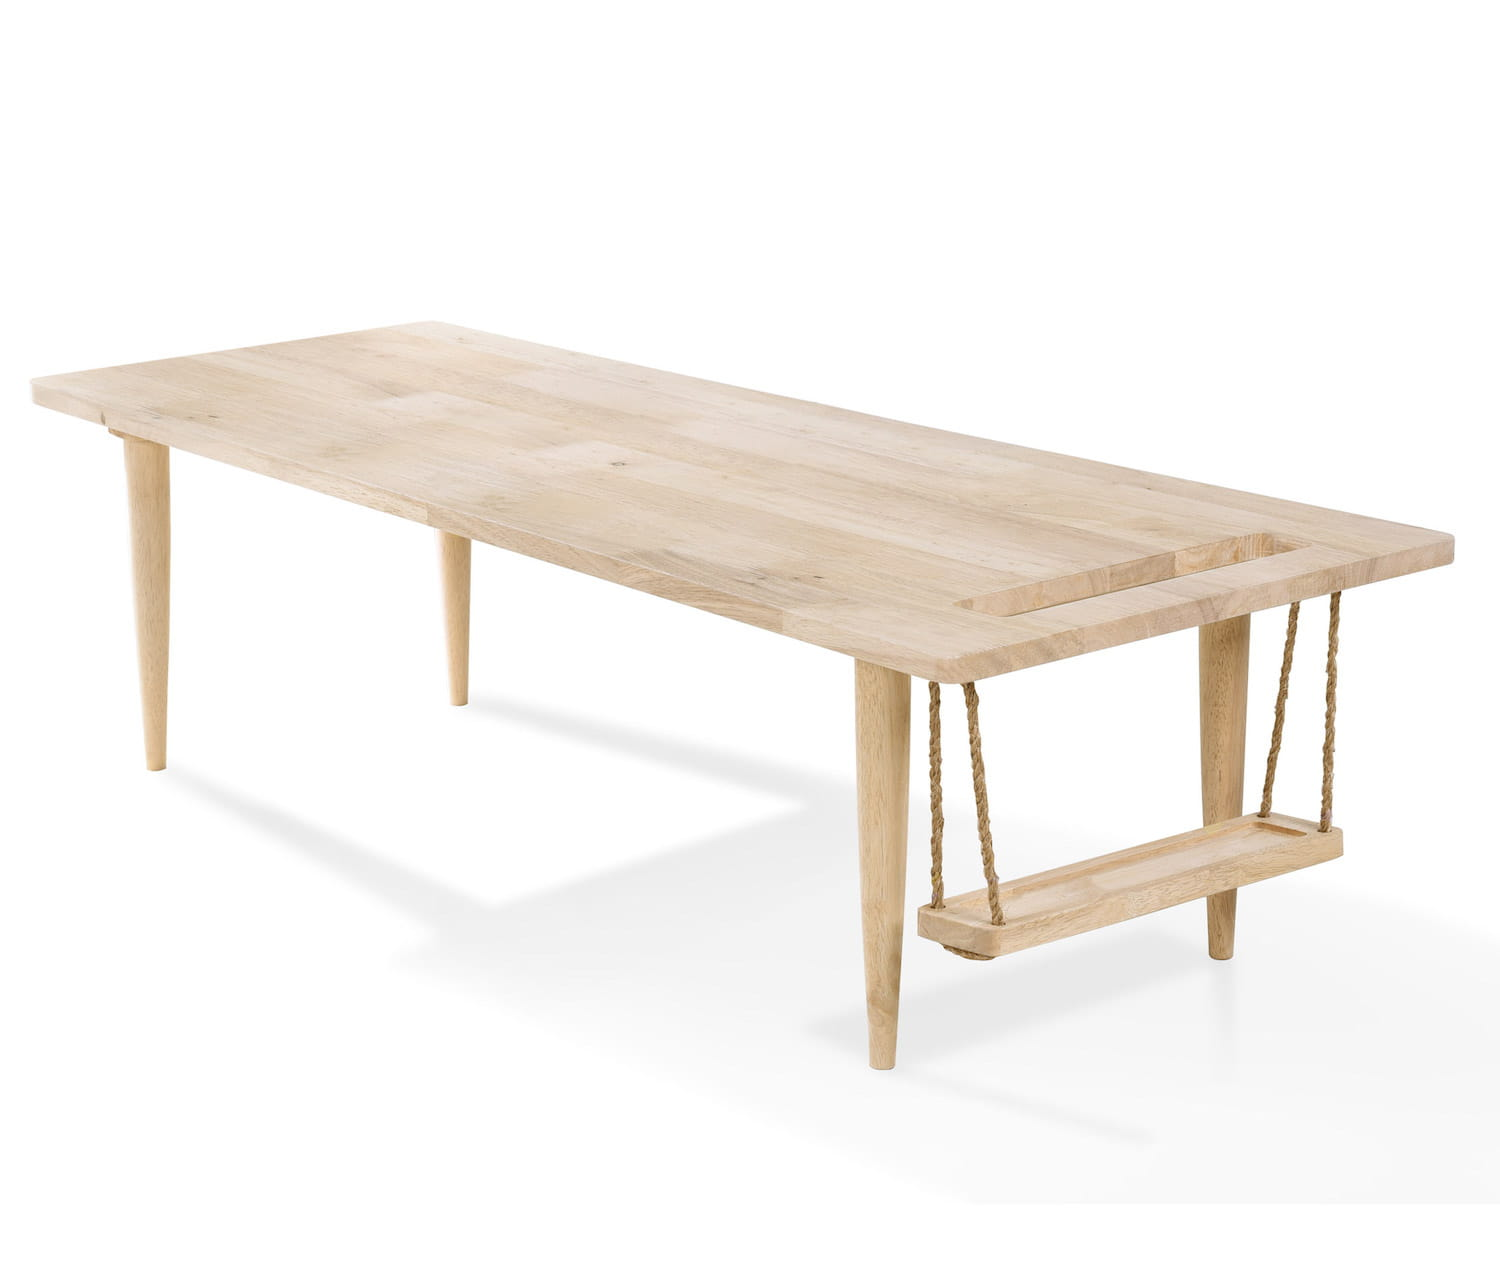 Une table basse originale - Fabriquer table basse originale ...